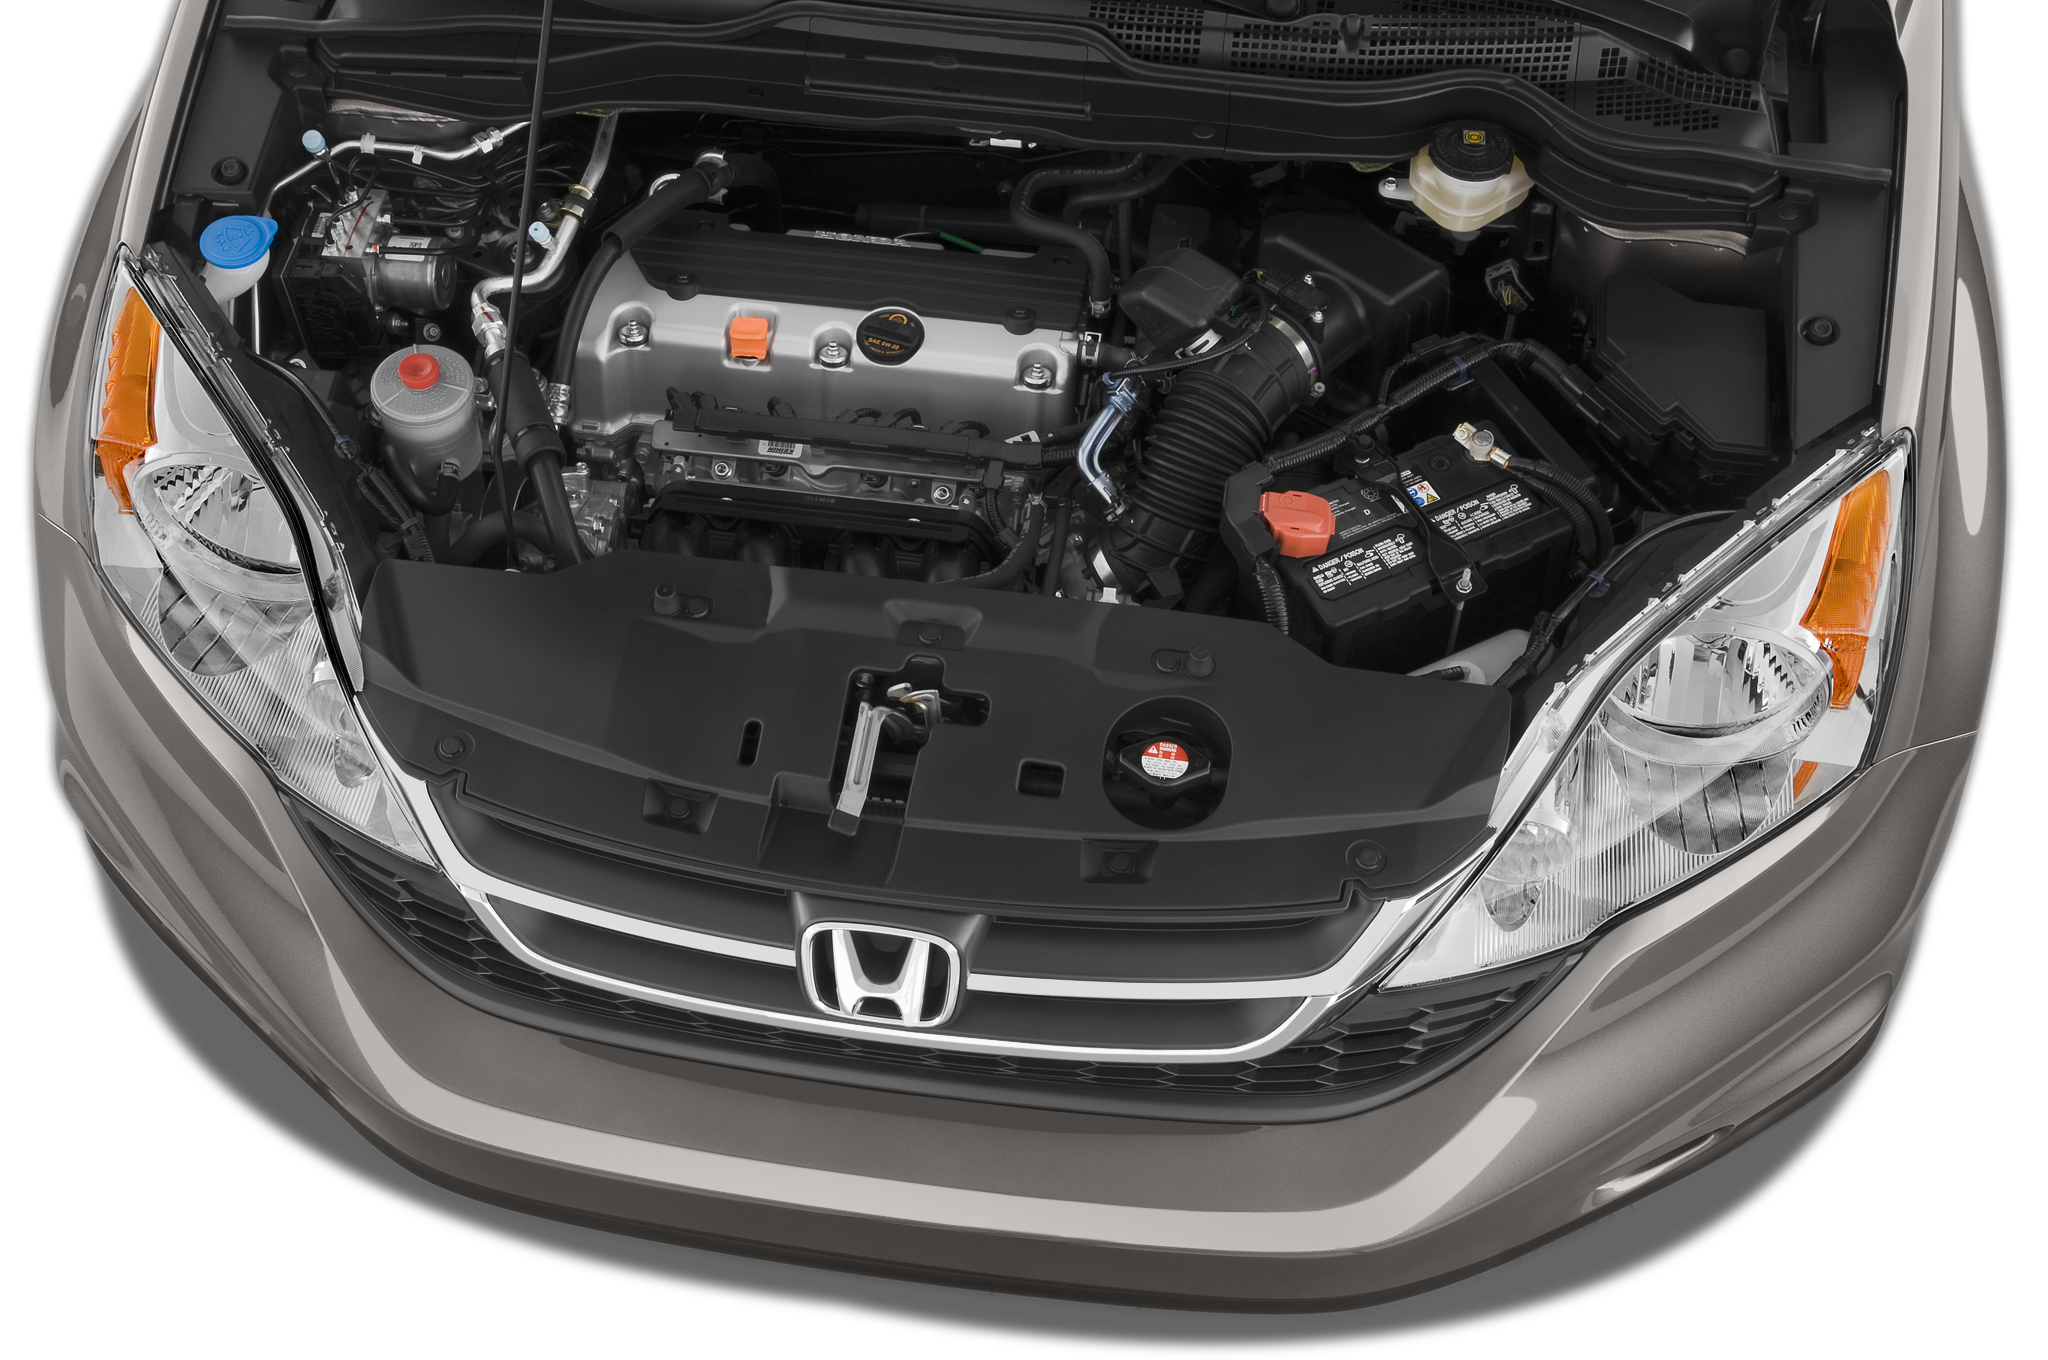 Honda Crv Wd Lx Auto Suv Engine on Honda Accord Wiring Diagram